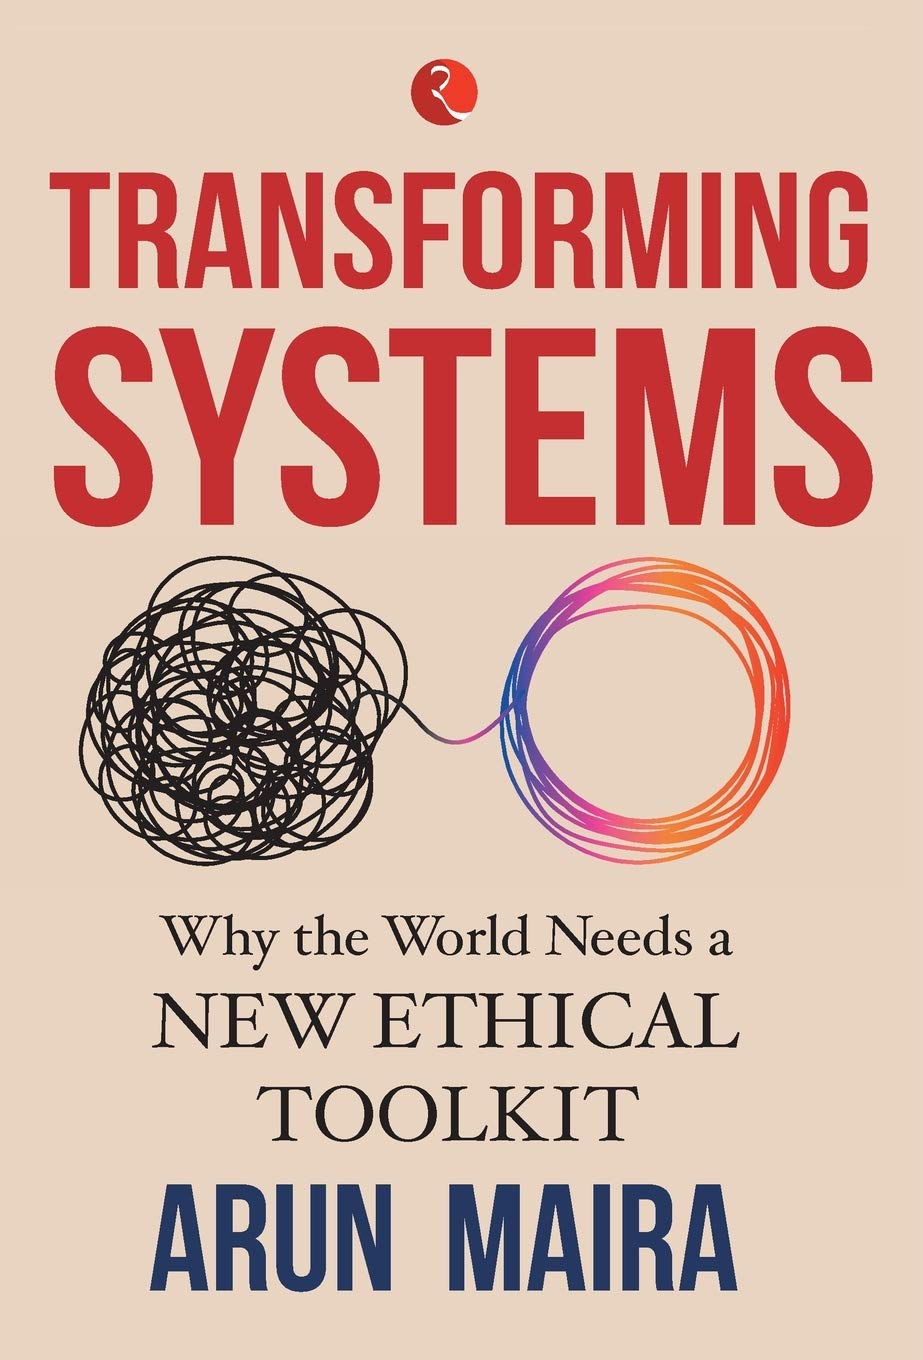 Image result for TRANSFORMING SYSTEMS; Why the World Needs a New Ethical Toolkit - Arun Maira